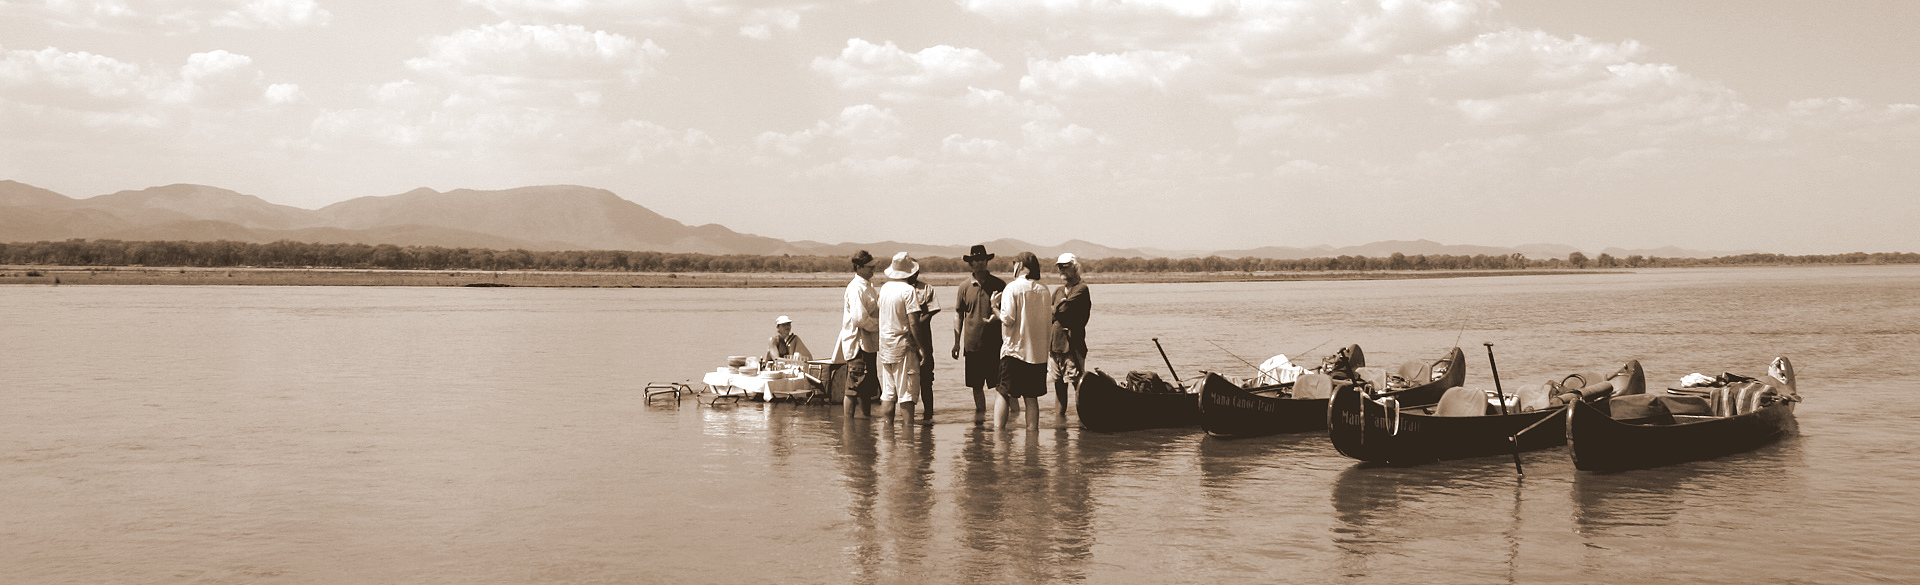 Early Mana Canoe Trail by Colin Bell courtesy Wilderness Safaris